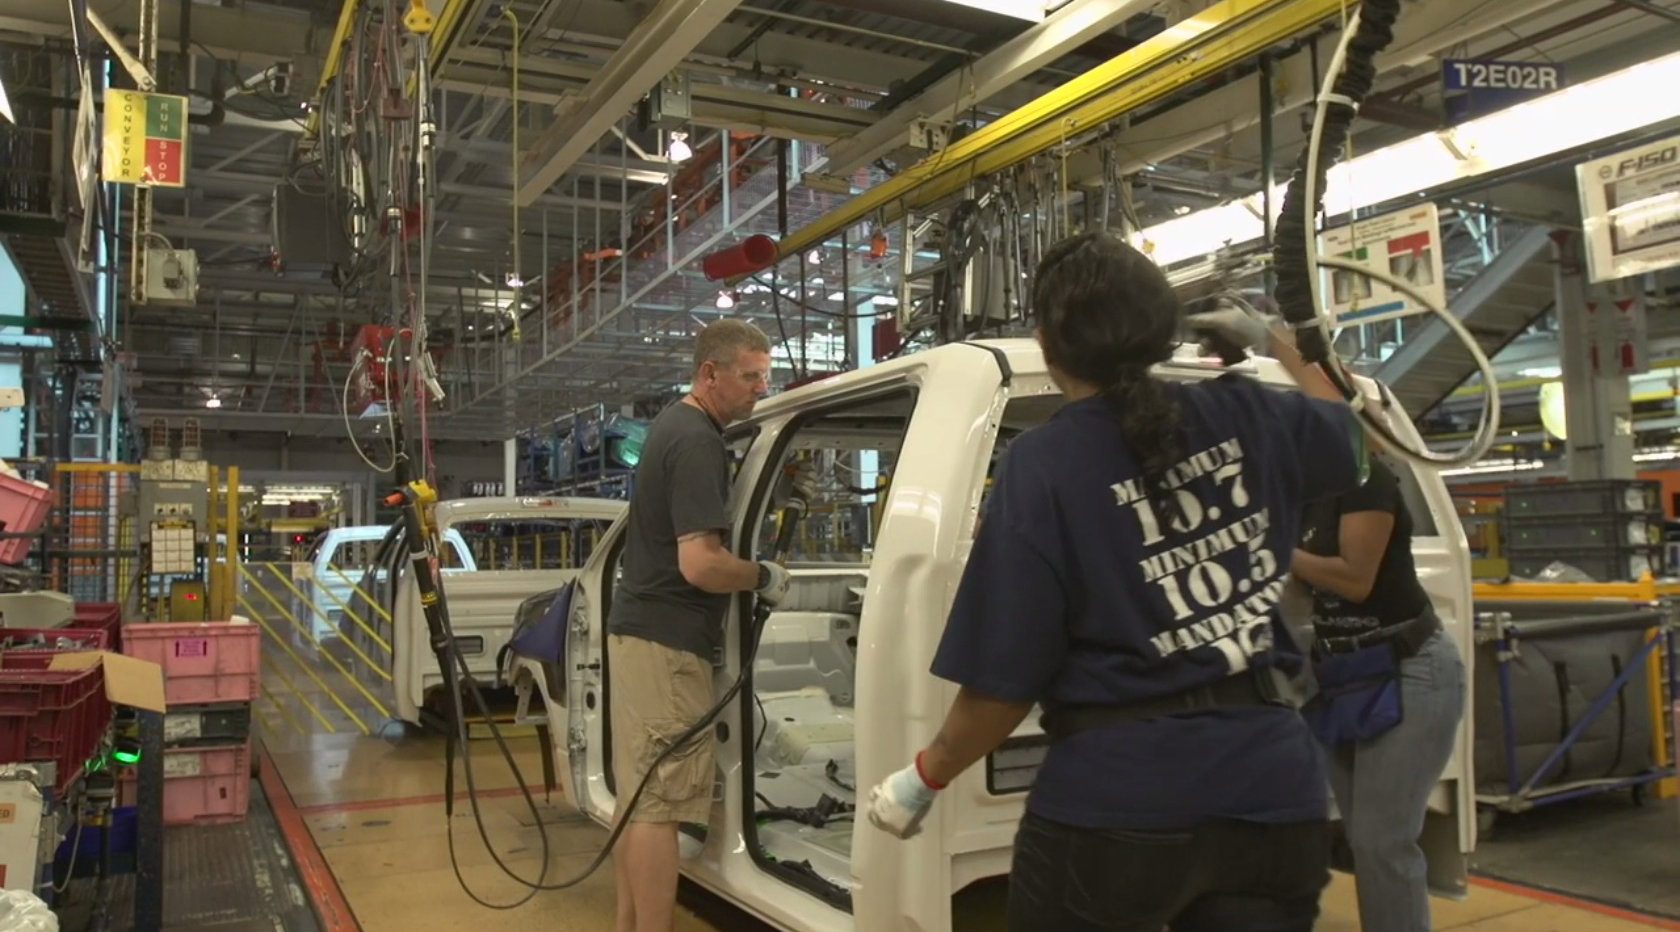 New Ford F150 >> Dearborn Truck Plant Gears Up to Assemble the 2015 Ford F-150 Pickup Truck - autoevolution